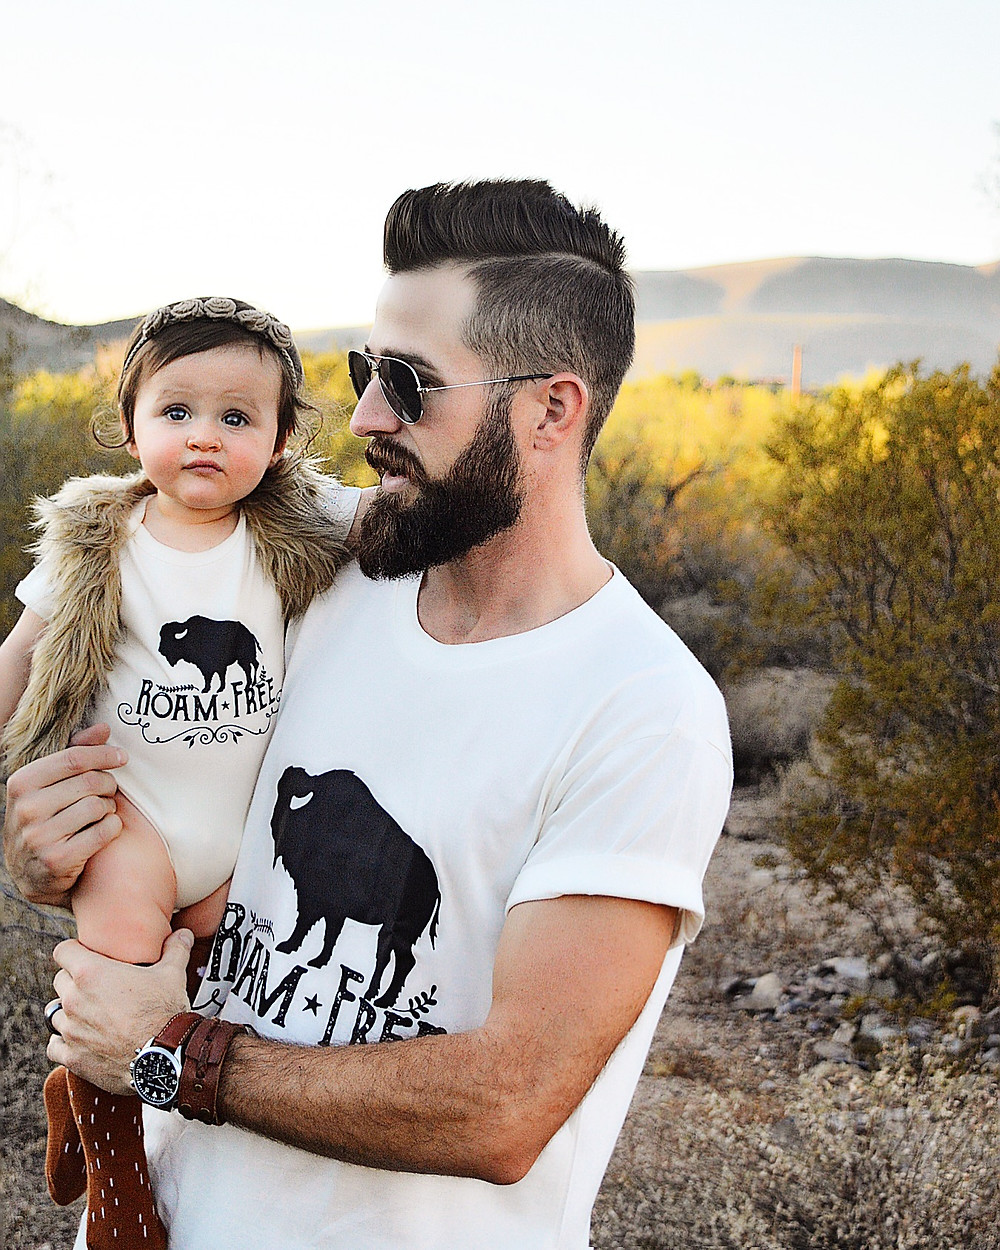 Urban Baby Co makes adorable outfits so you can match with your baby